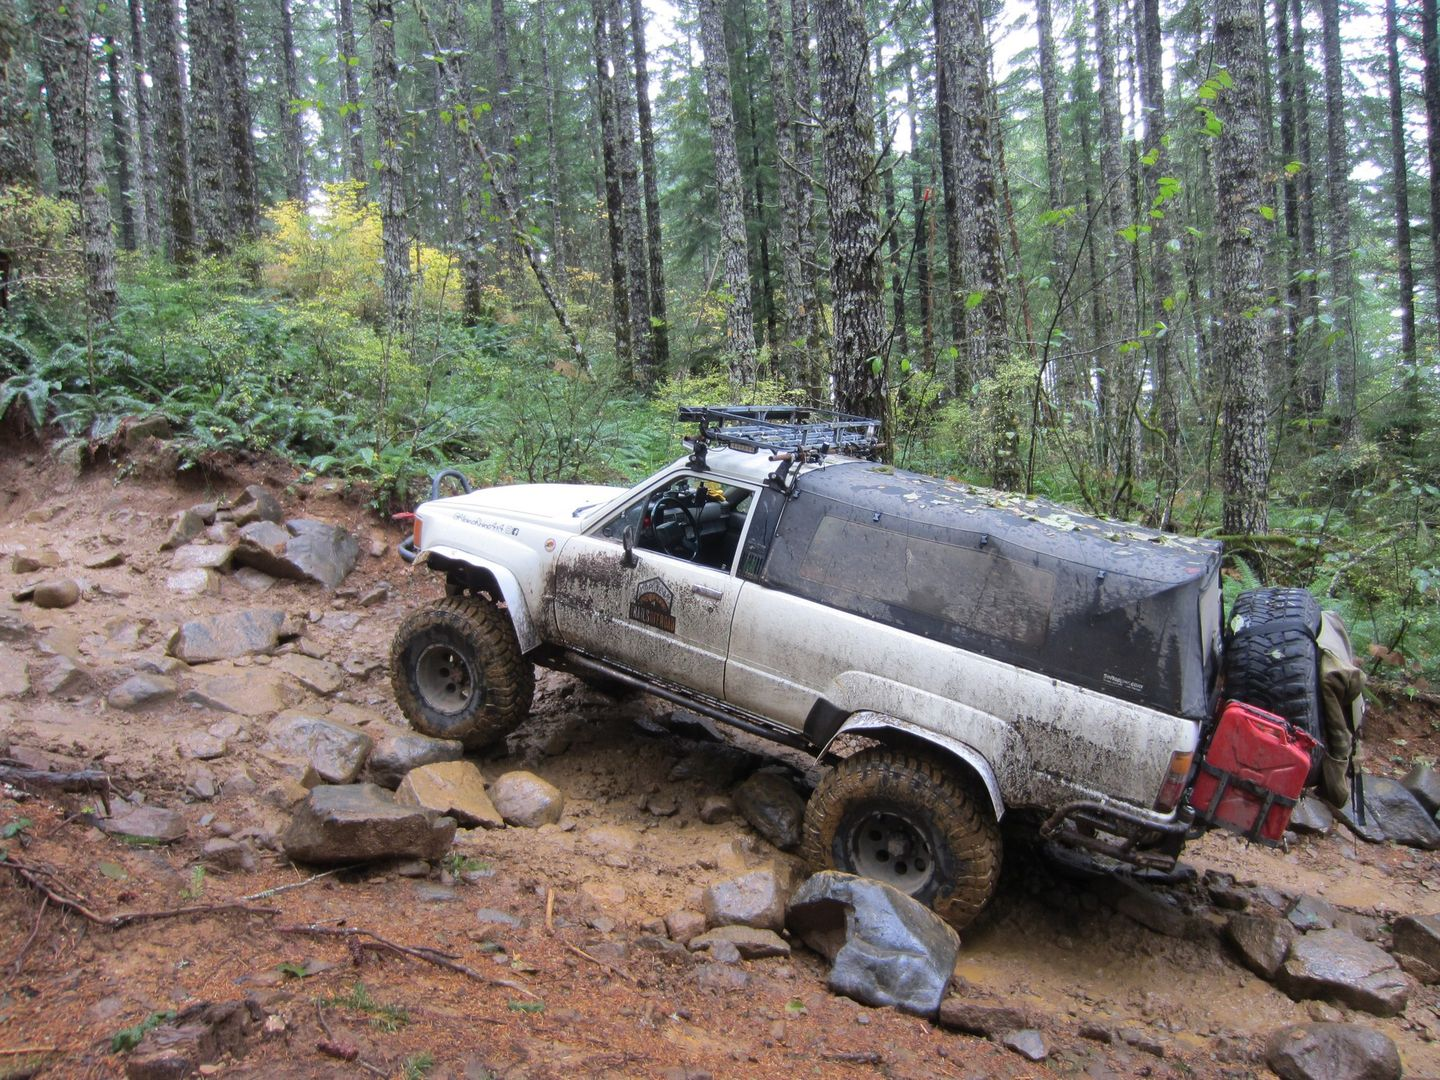 Firebreak Five / Tillamook State Forest - Waypoint 3: Large Boulder and Shelf Obstacle -- Challenging When Wet